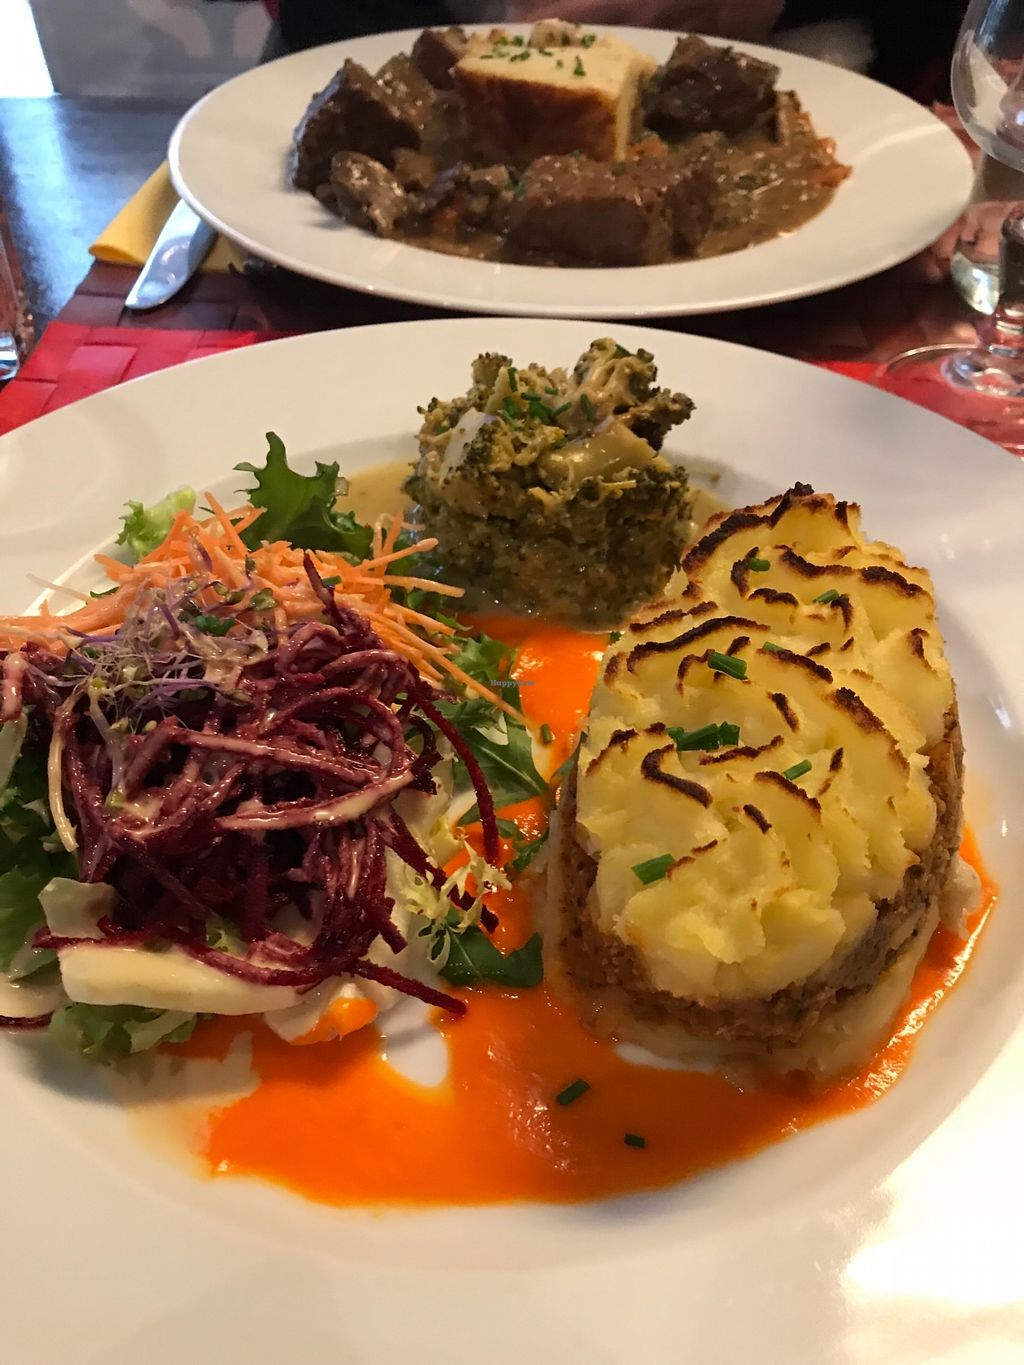 """Photo of Le Potager du Marais  by <a href=""""/members/profile/TARAMCDONALD"""">TARAMCDONALD</a> <br/>Incredible traditional French cuisine & it's vegan ? <br/> December 30, 2017  - <a href='/contact/abuse/image/4106/341102'>Report</a>"""